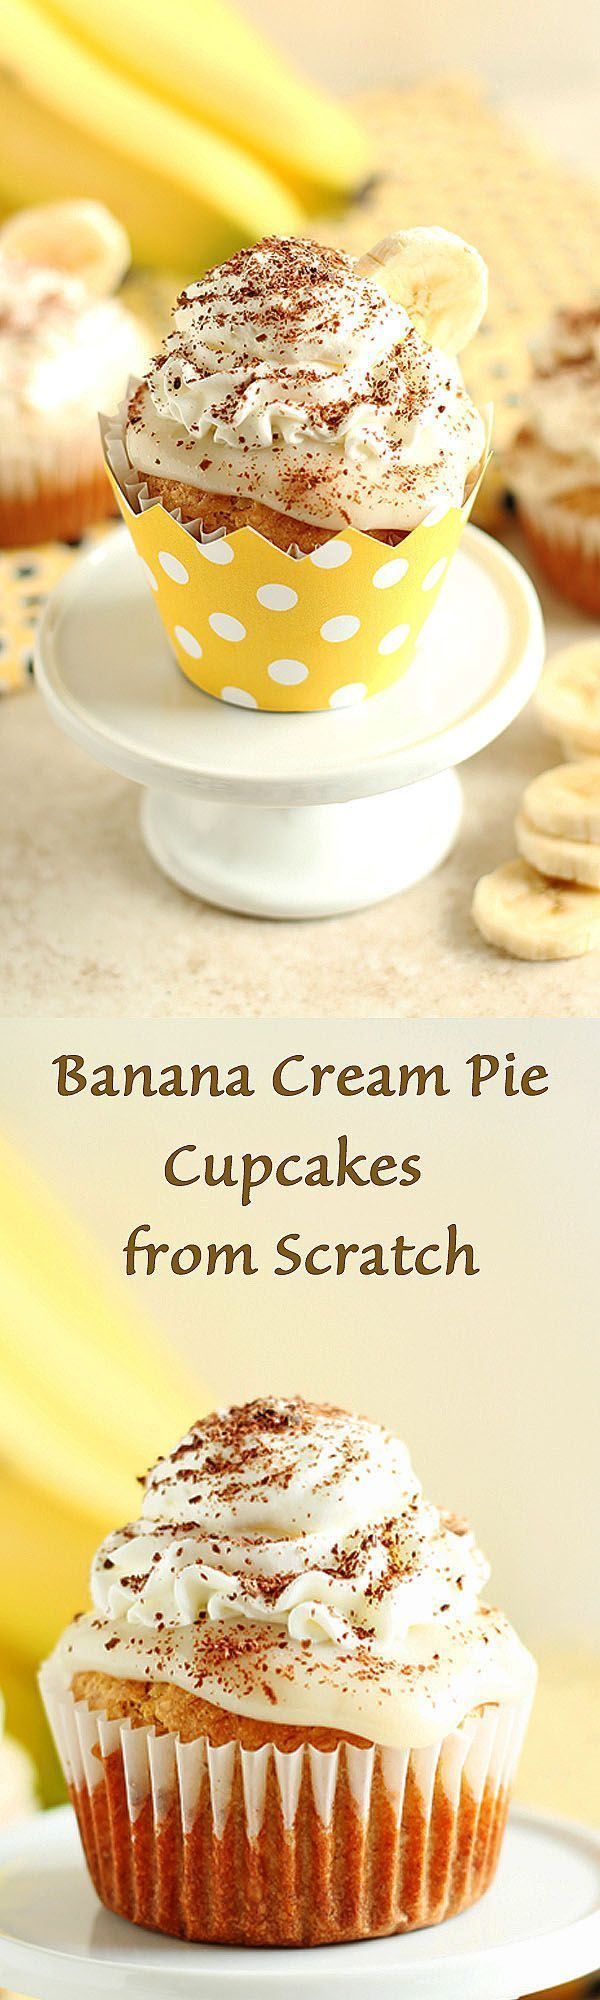 Banana Cream Pie Cupcakes from Scratch - Fluffy and moist banana cream pie cupcakes made from scratch with delicious vanilla pudding and whipped cream frosting. Perfect recipe for a party! by http://ilonaspassion.com I /ilonaspassion/